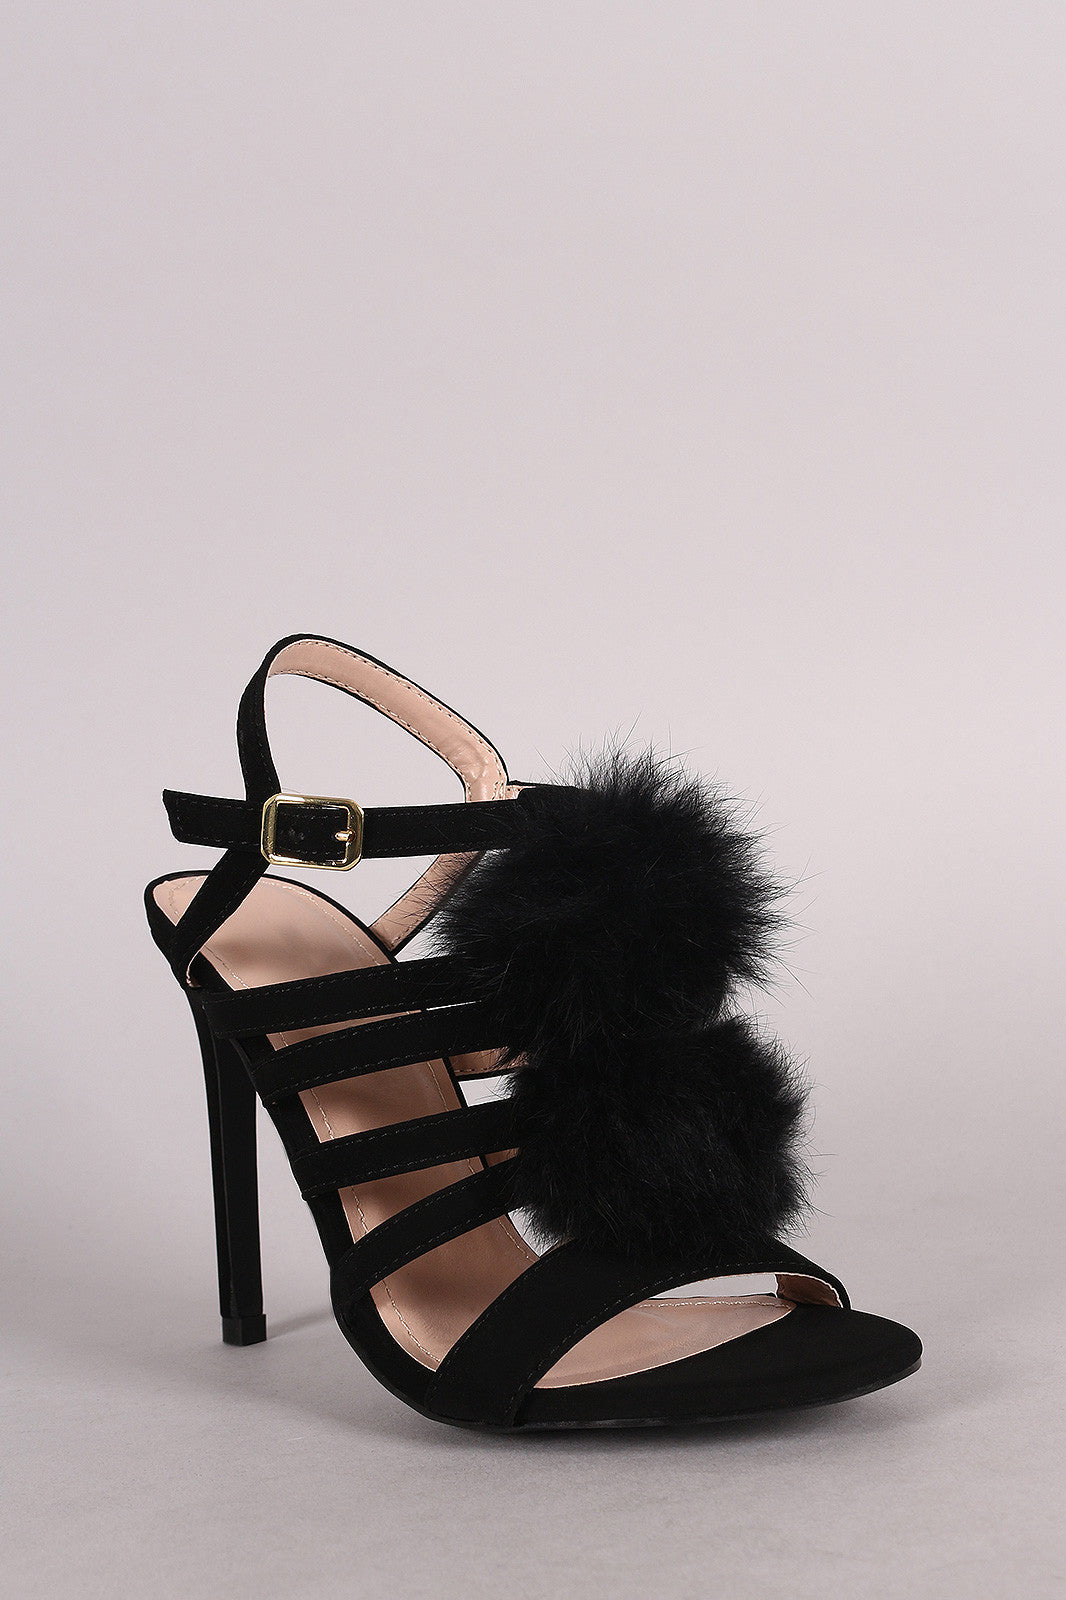 Shoe Republic LA Nubuck Strappy Pom Pom Stiletto Heel - Thick 'N' Curvy Shop - 8